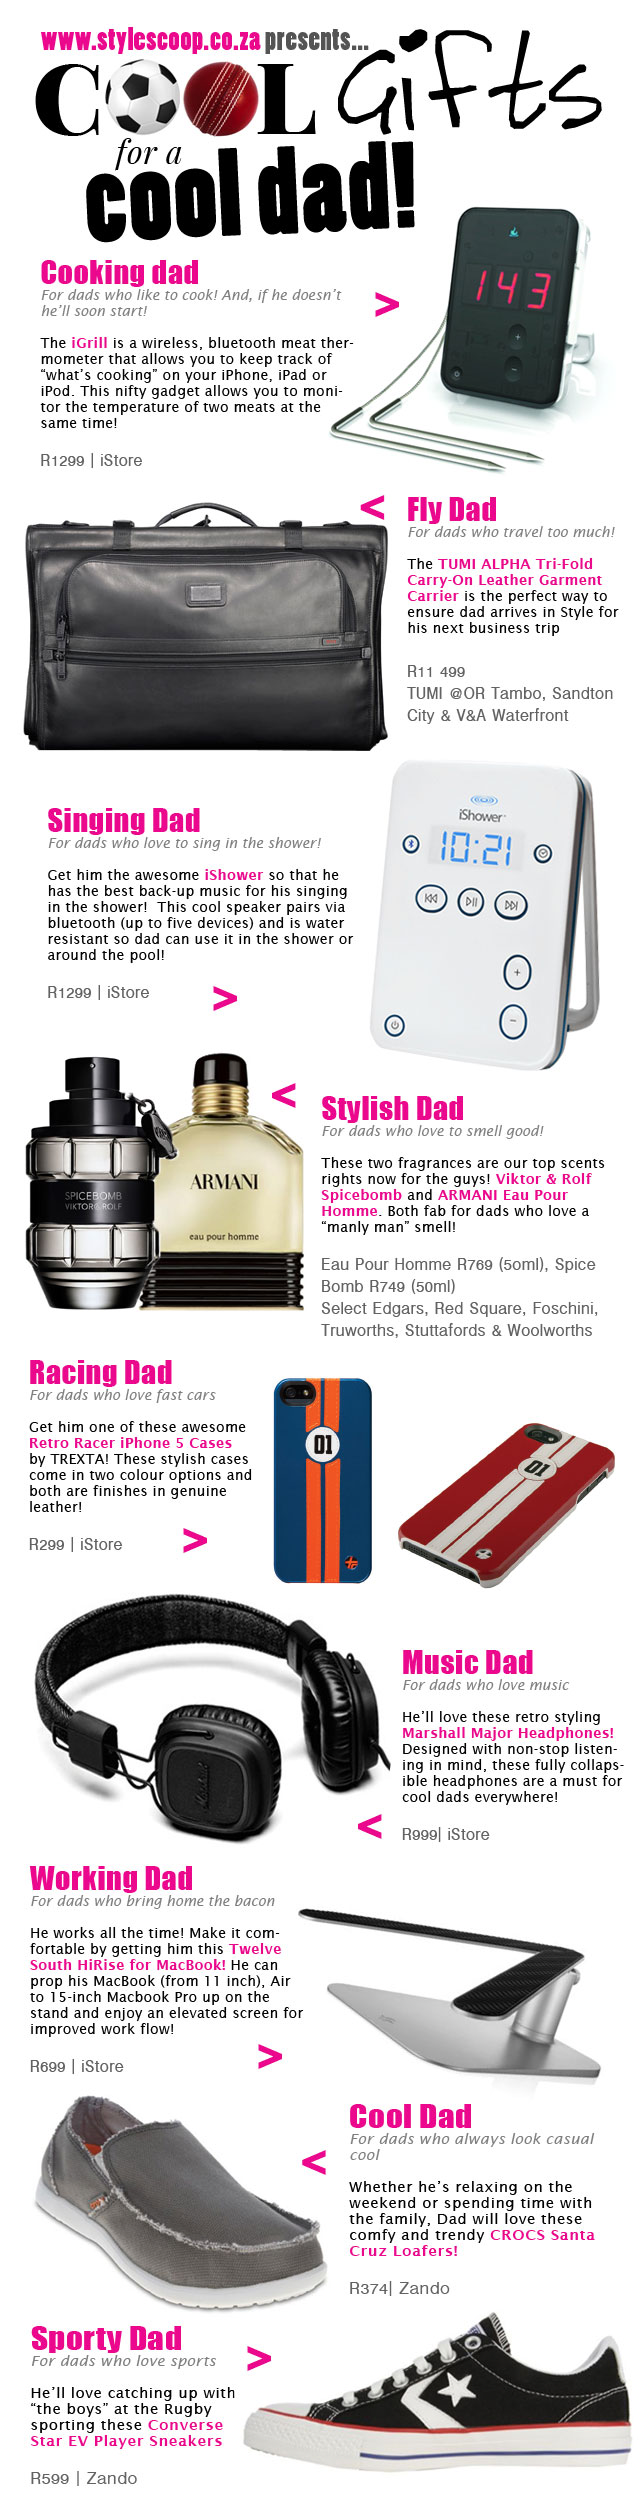 stylescoop-fathers-day-feature